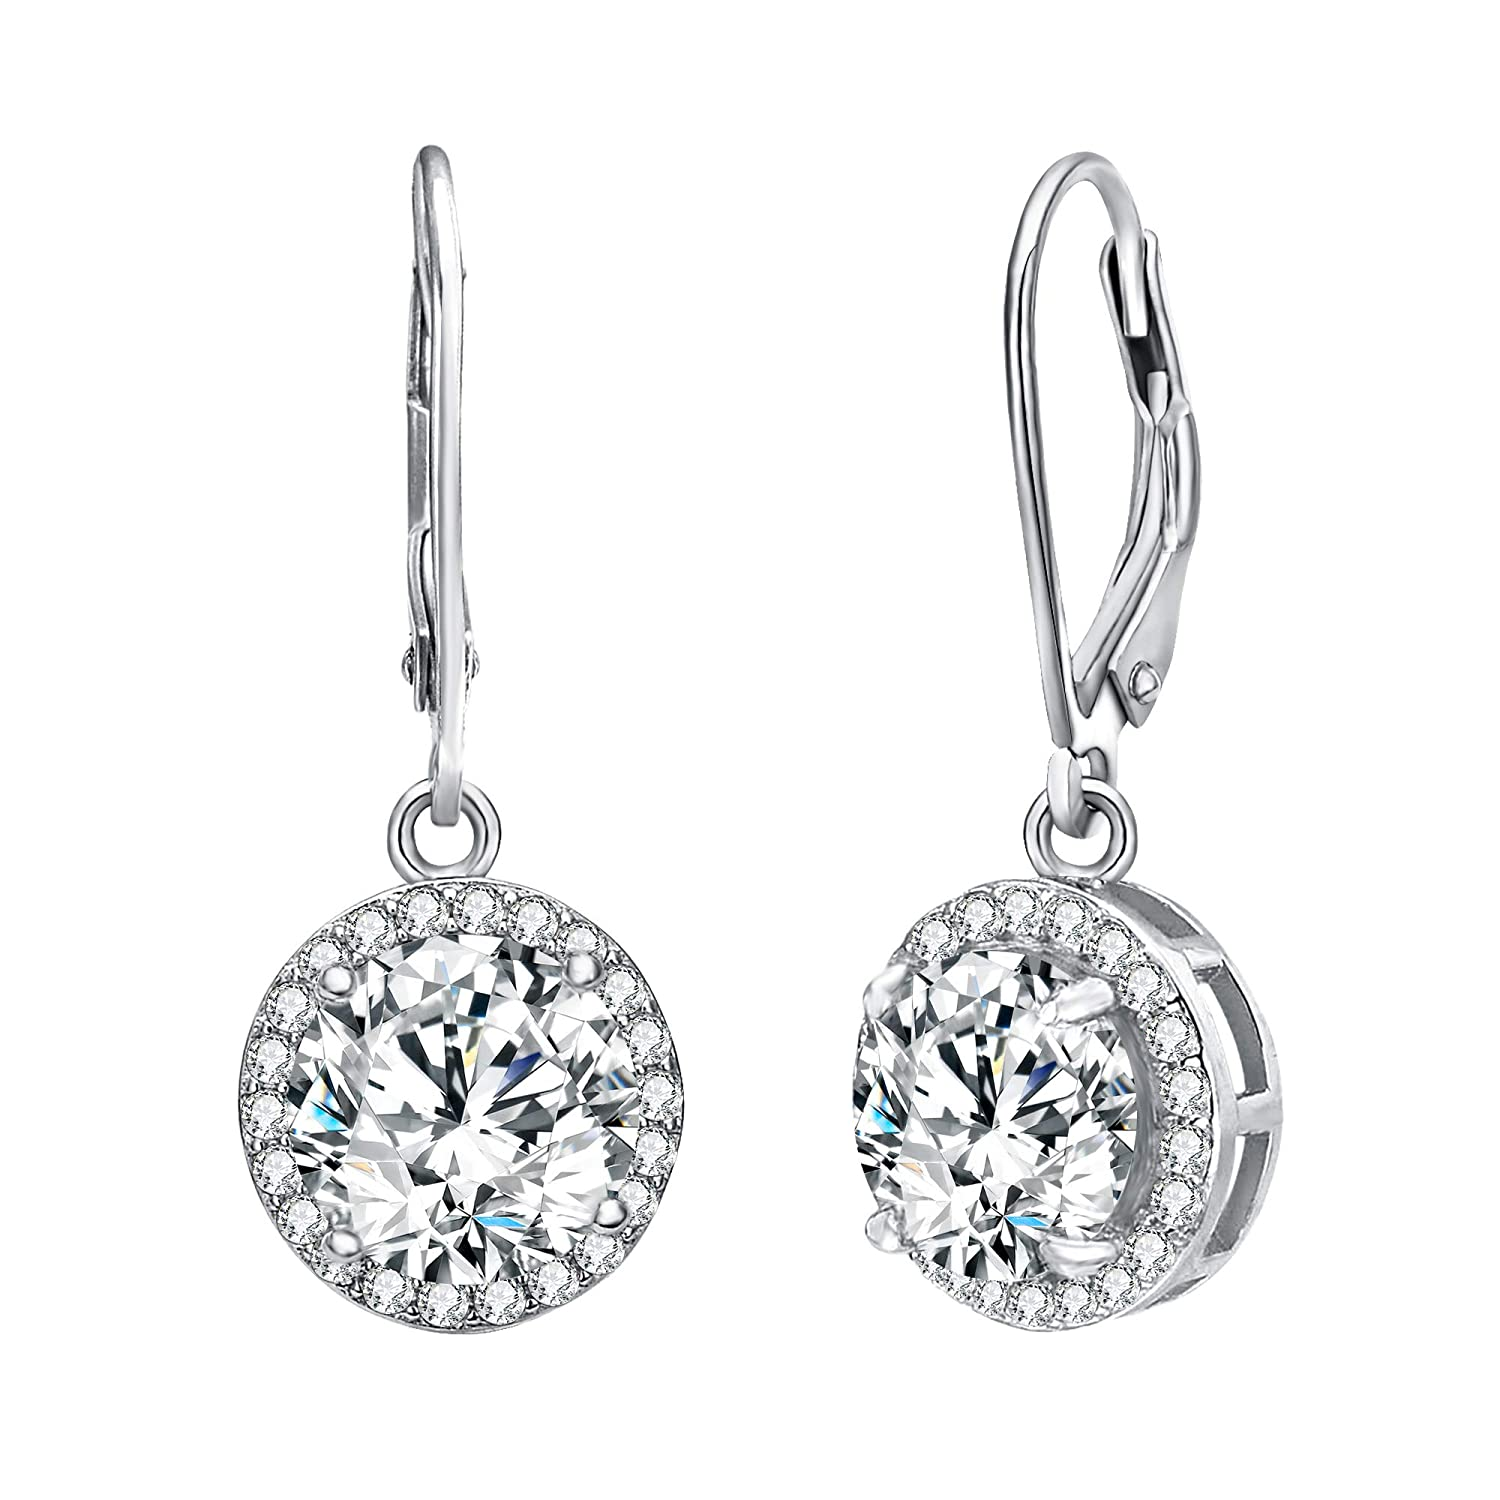 358d4af26 Amazon.com: EVER FAITH 925 Sterling Silver Elegant Round CZ Prong Setting  Leverback Dangle Earrings Clear: Jewelry